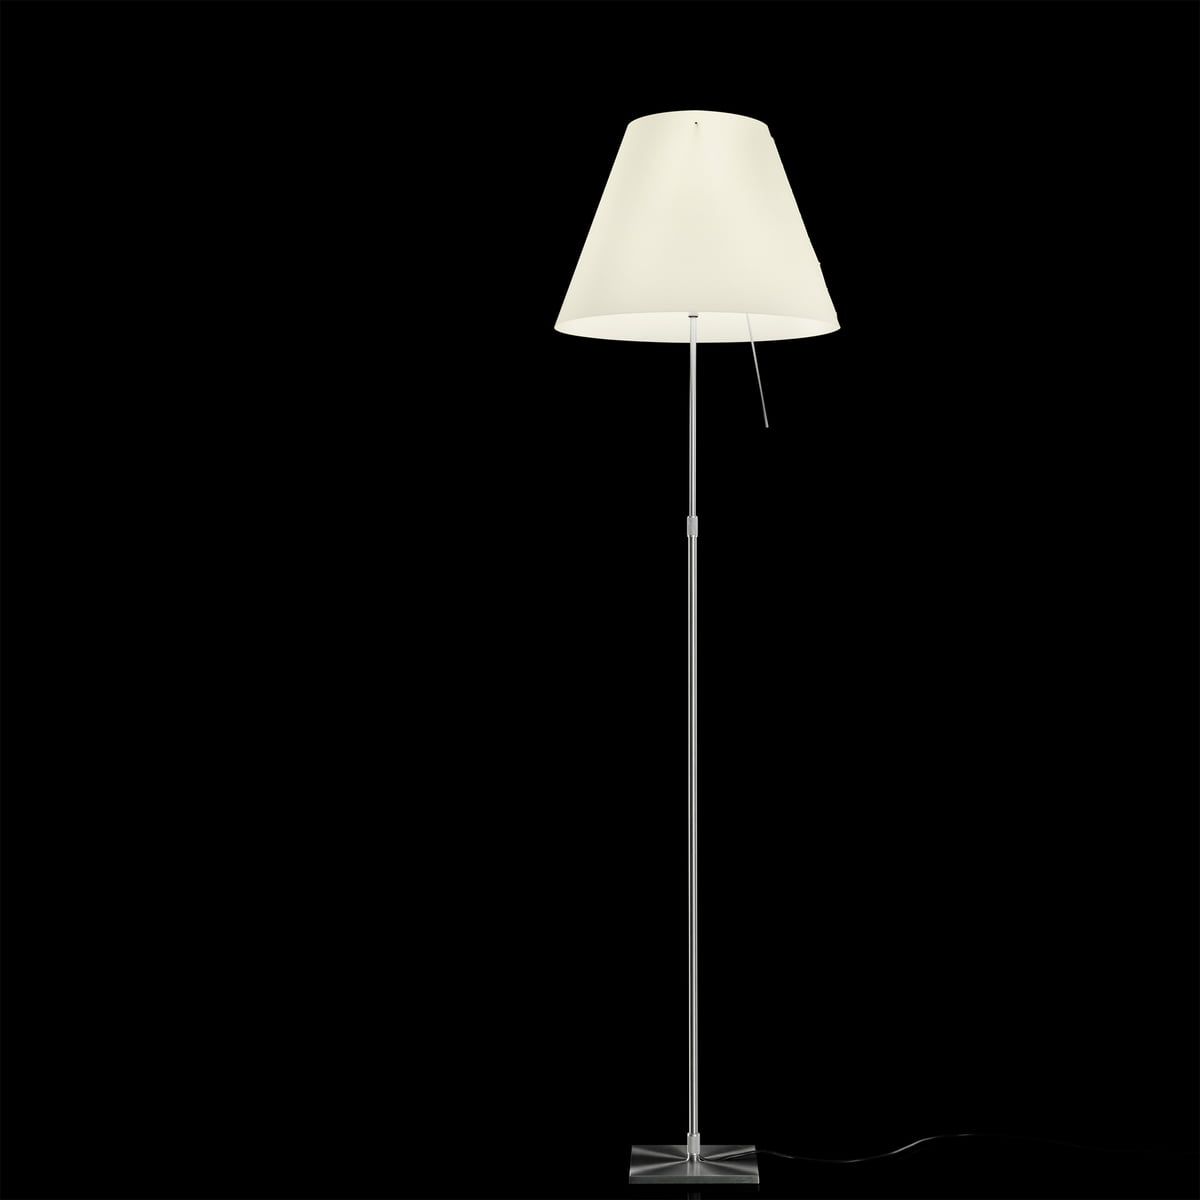 costanza standard lamp by luceplan. Black Bedroom Furniture Sets. Home Design Ideas